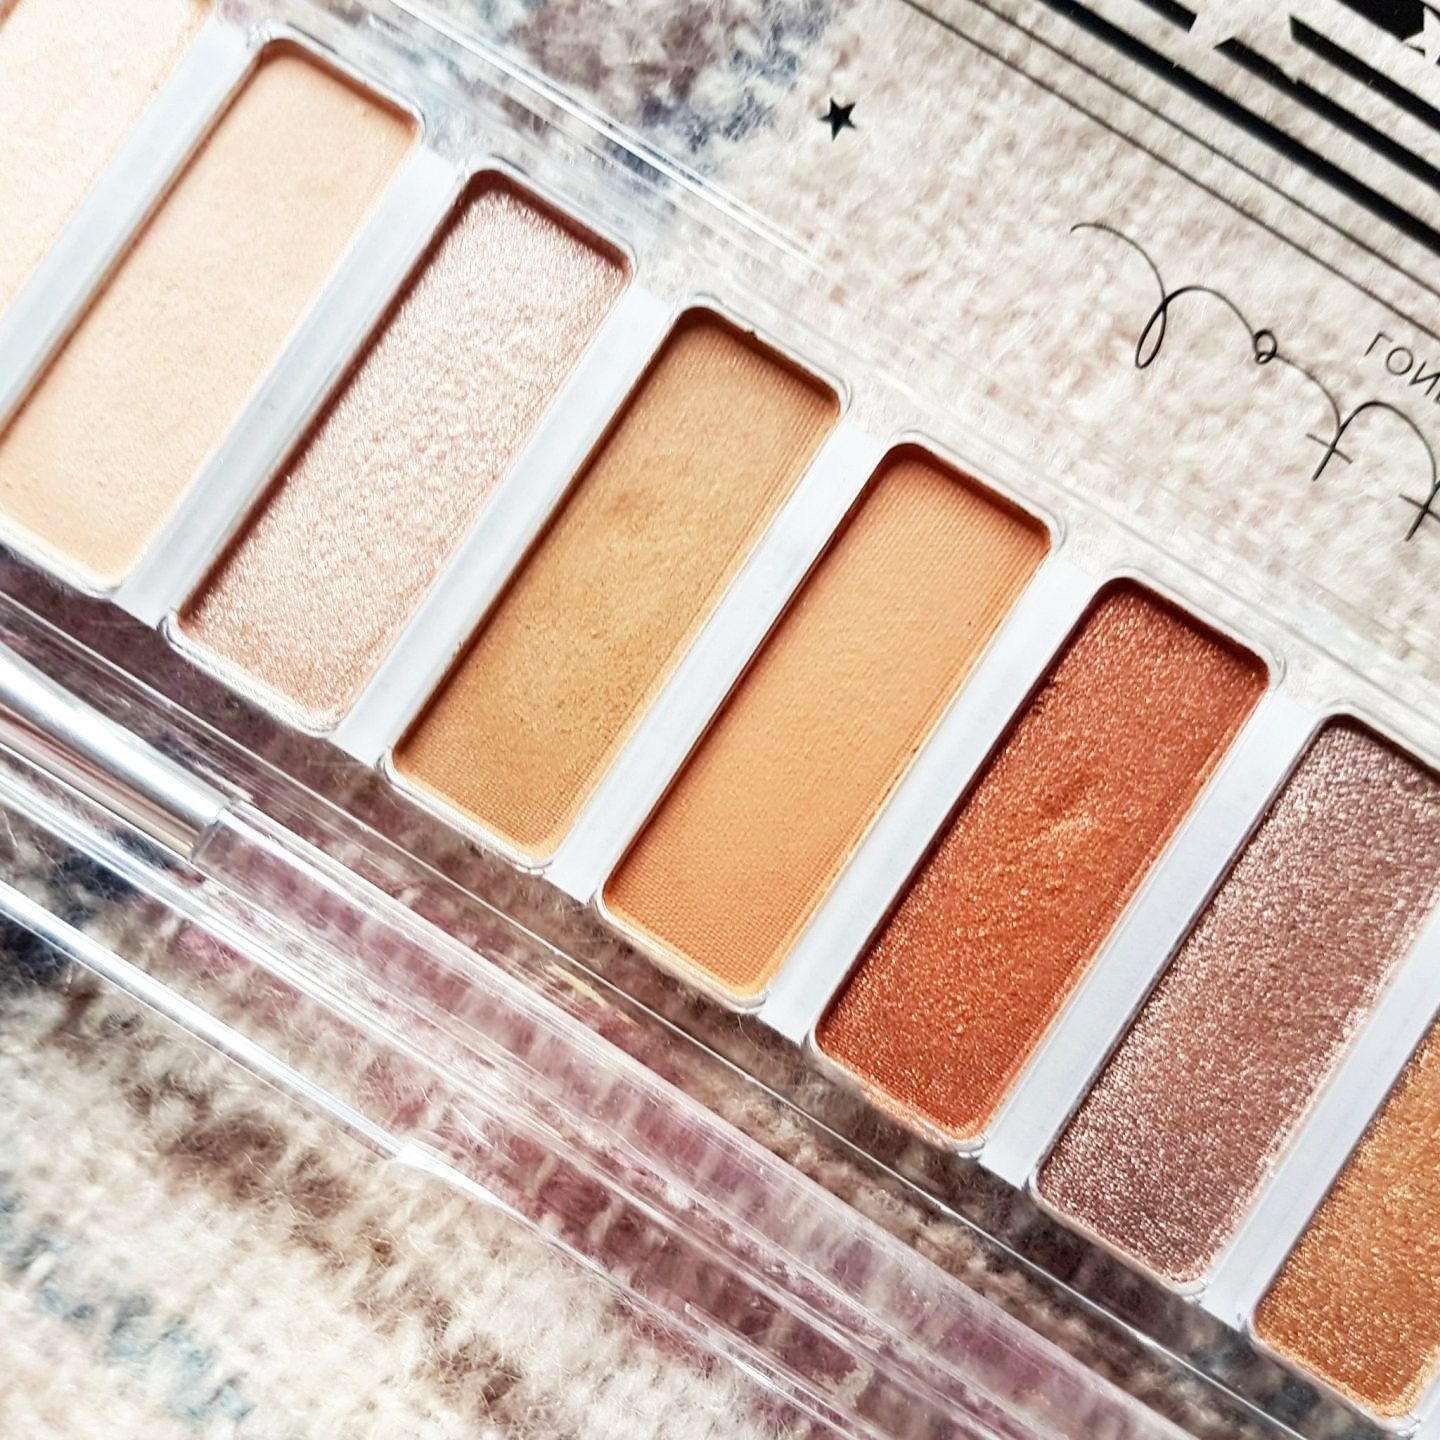 Lottie London The Rusts Shadow Swatch Eyeshadow Palette